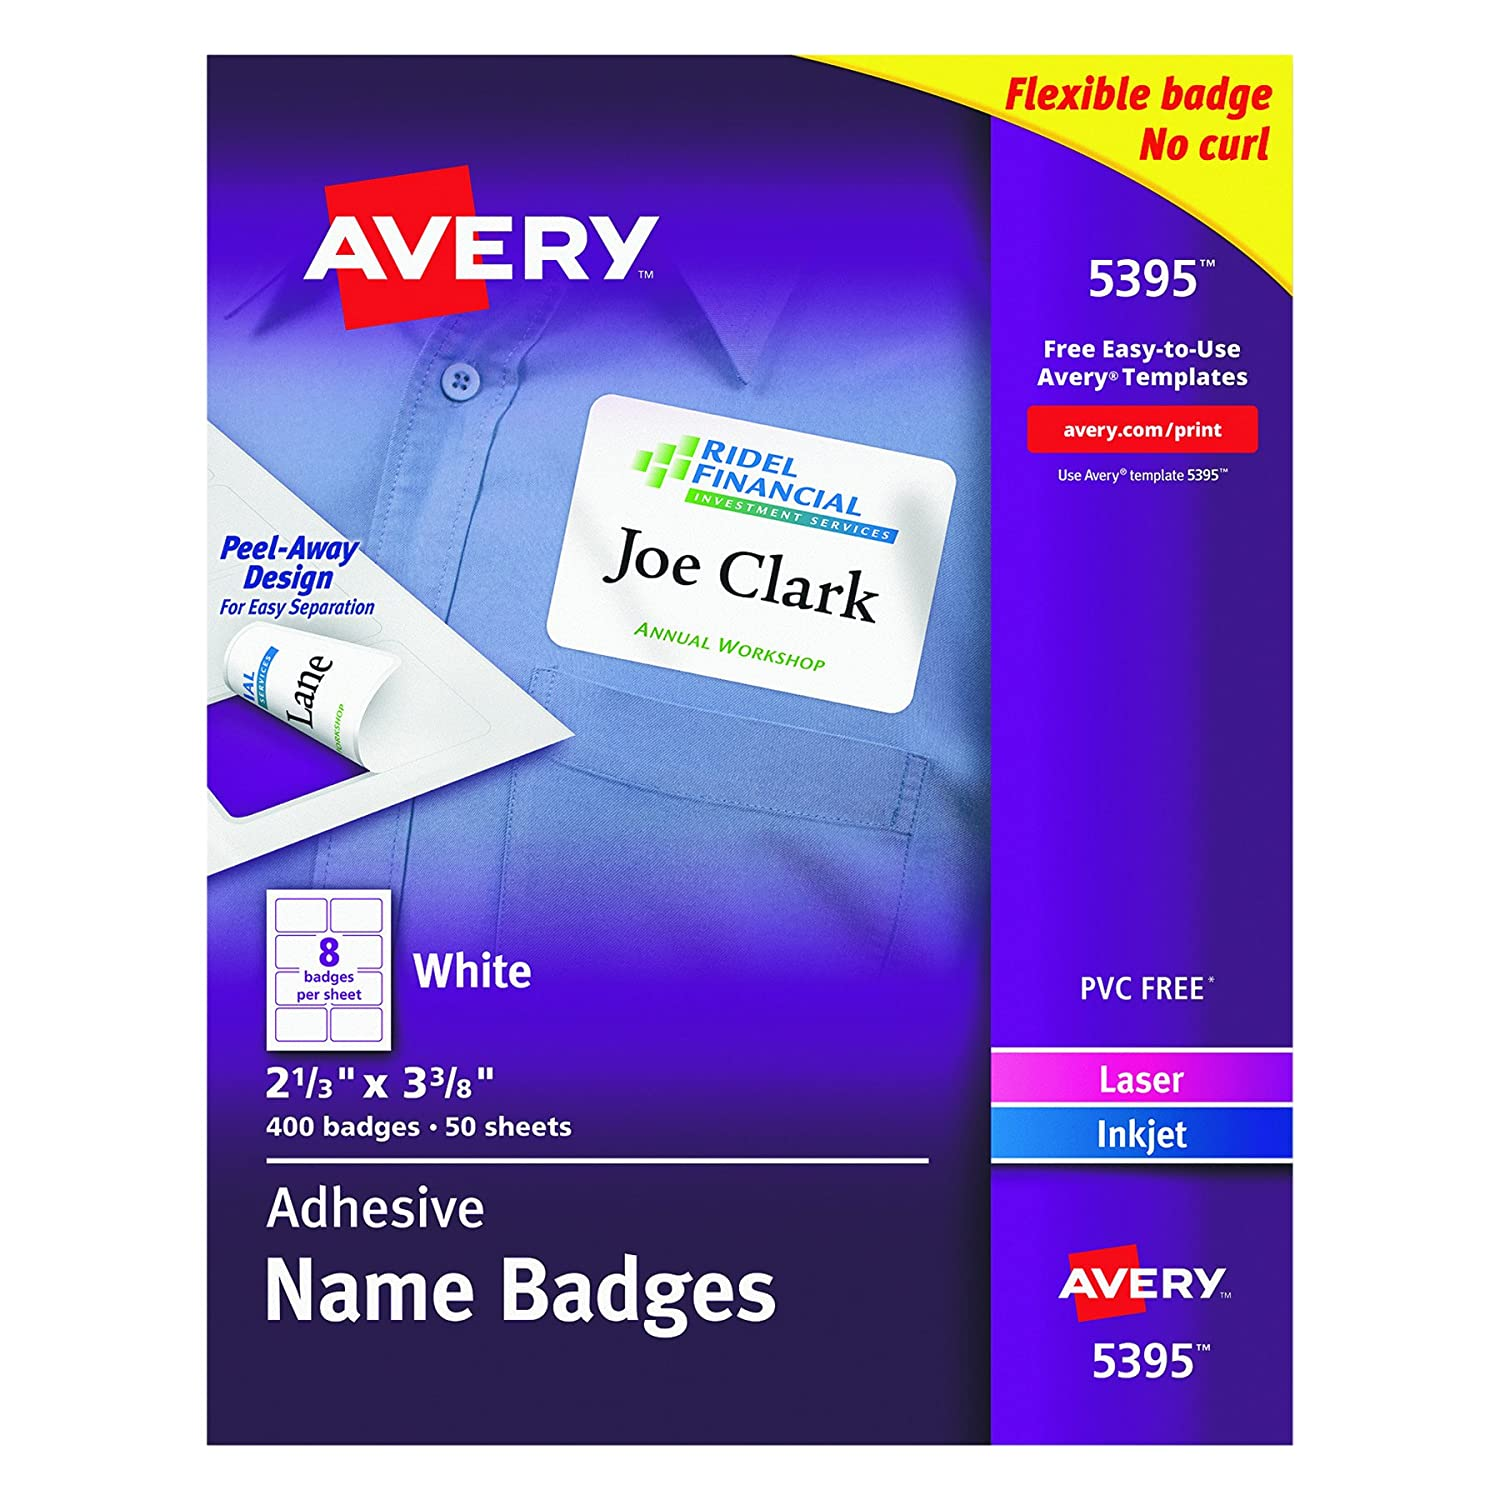 Amazon avery adhesive name badges 233 x 338 inches white amazon avery adhesive name badges 233 x 338 inches white box of 400 05395 white adhesive name badges office products pronofoot35fo Gallery